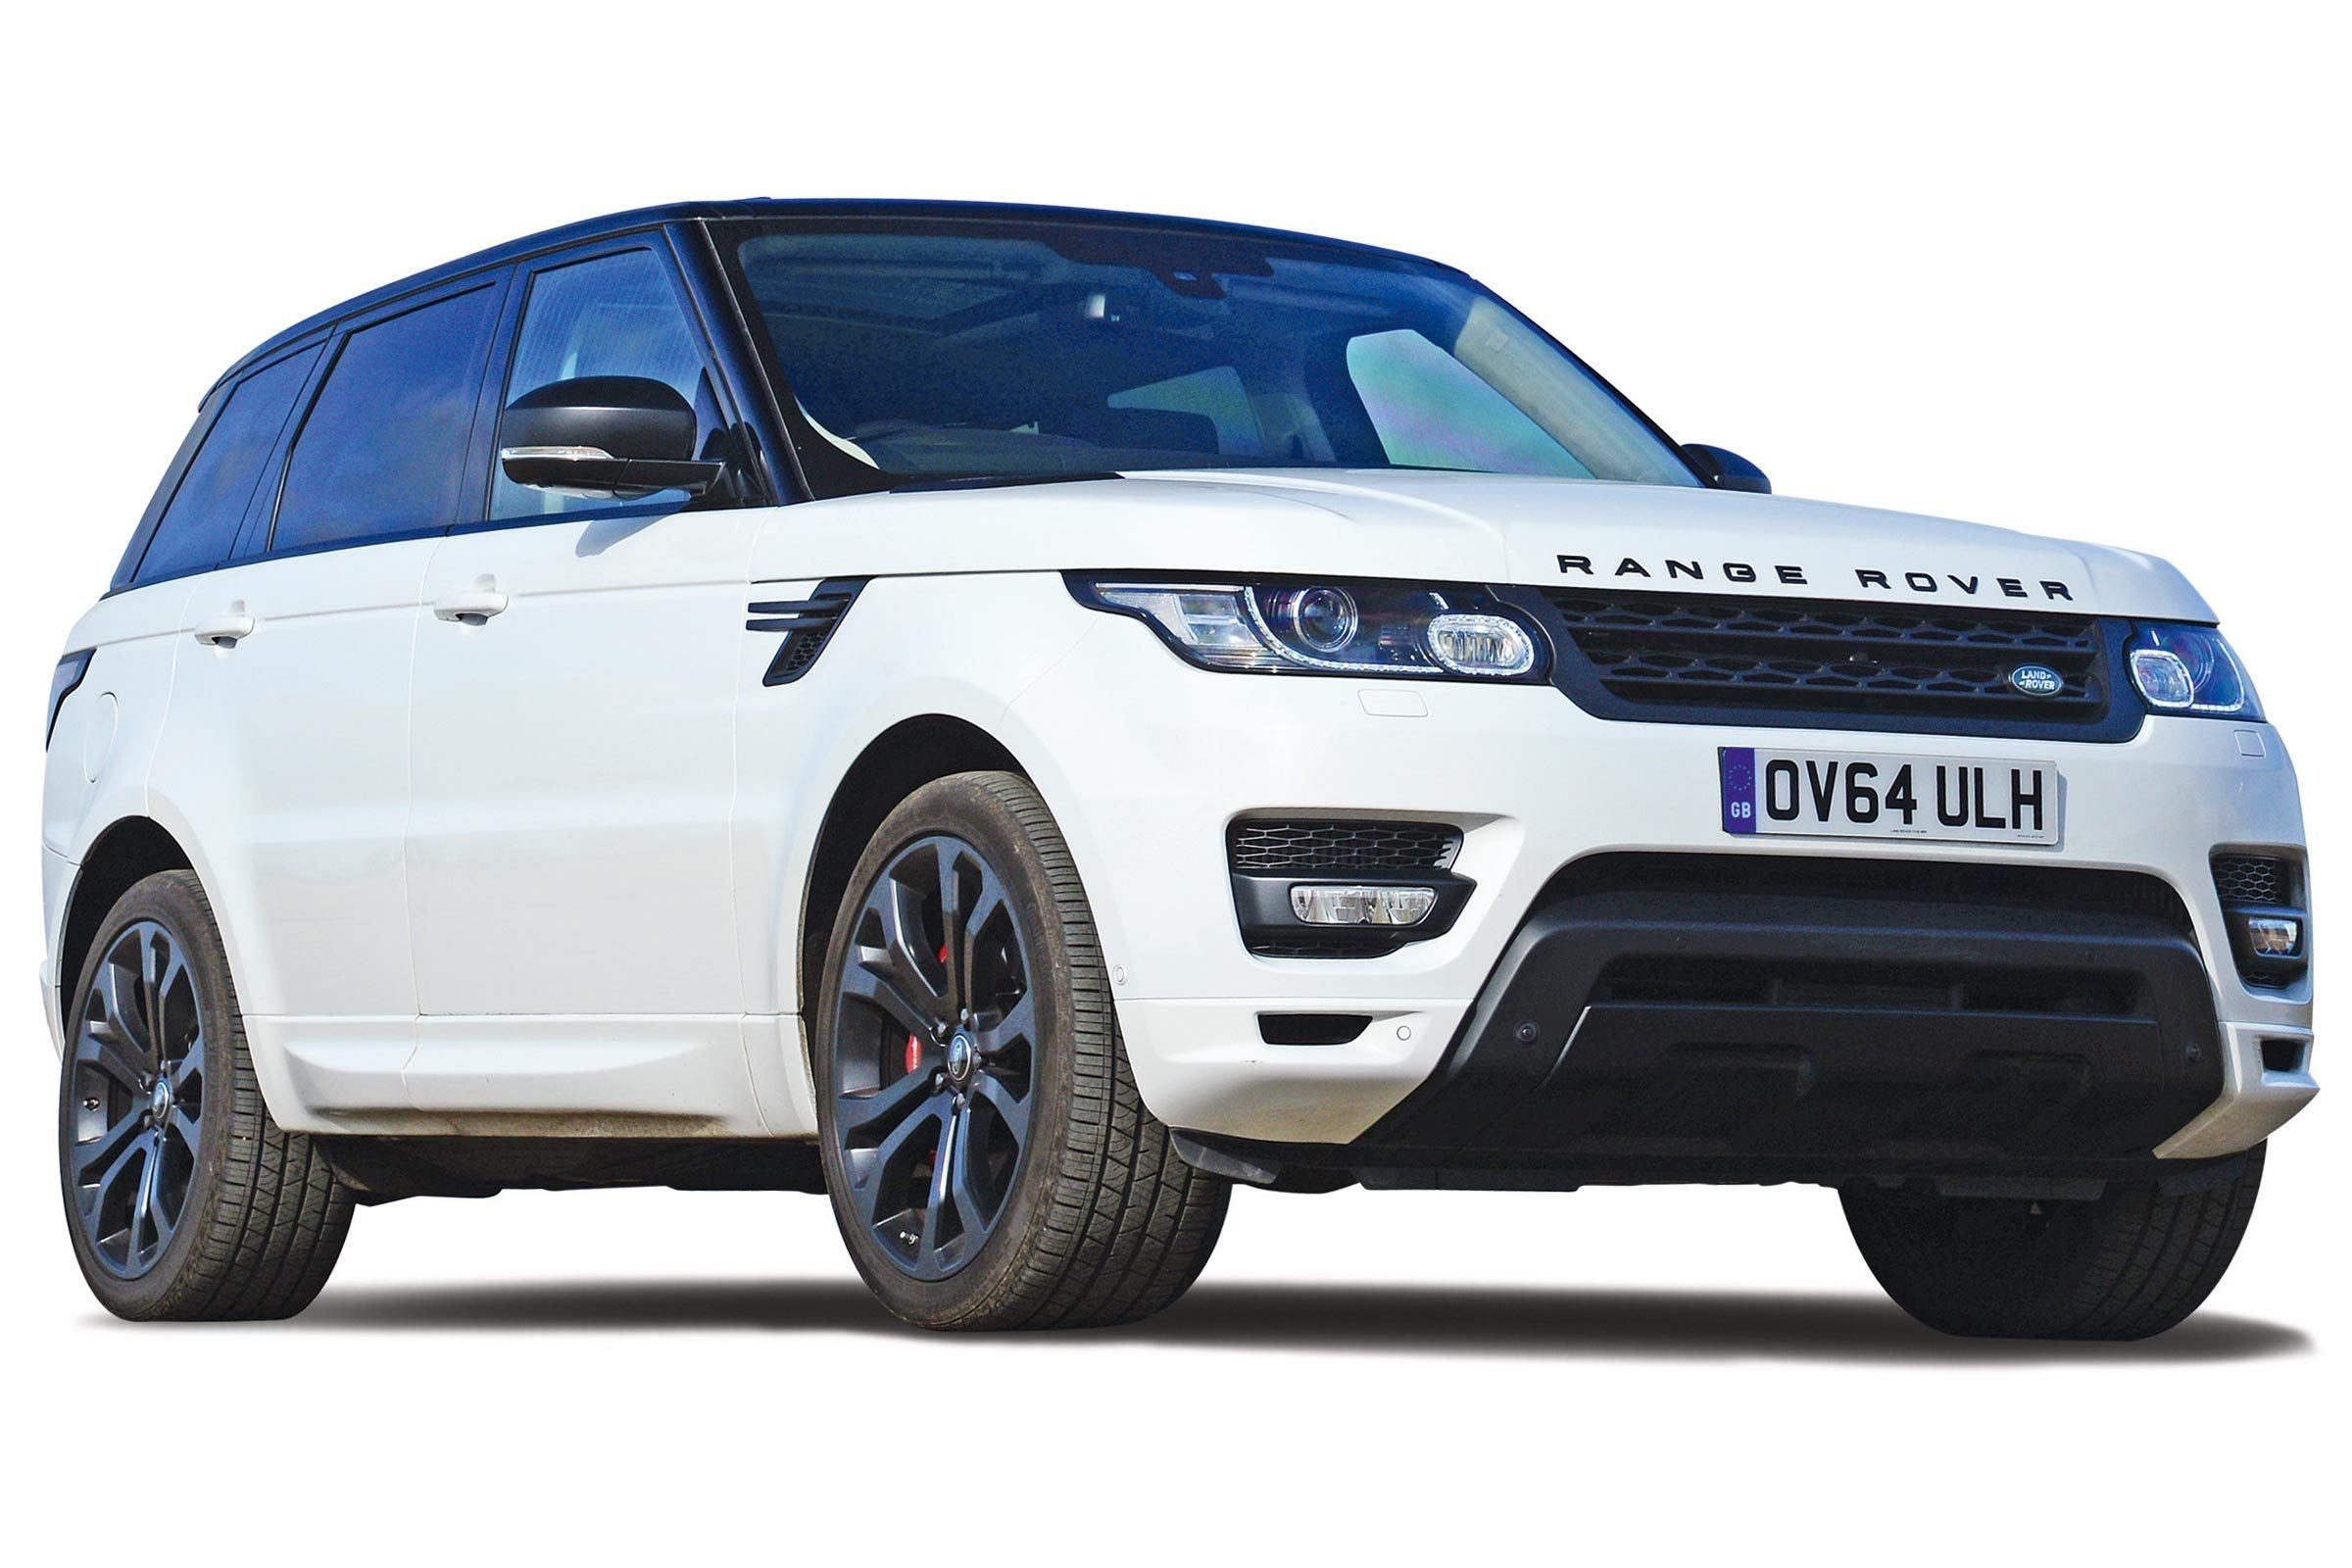 New Range Rover Sport Suv Review Carbuyer On This Month